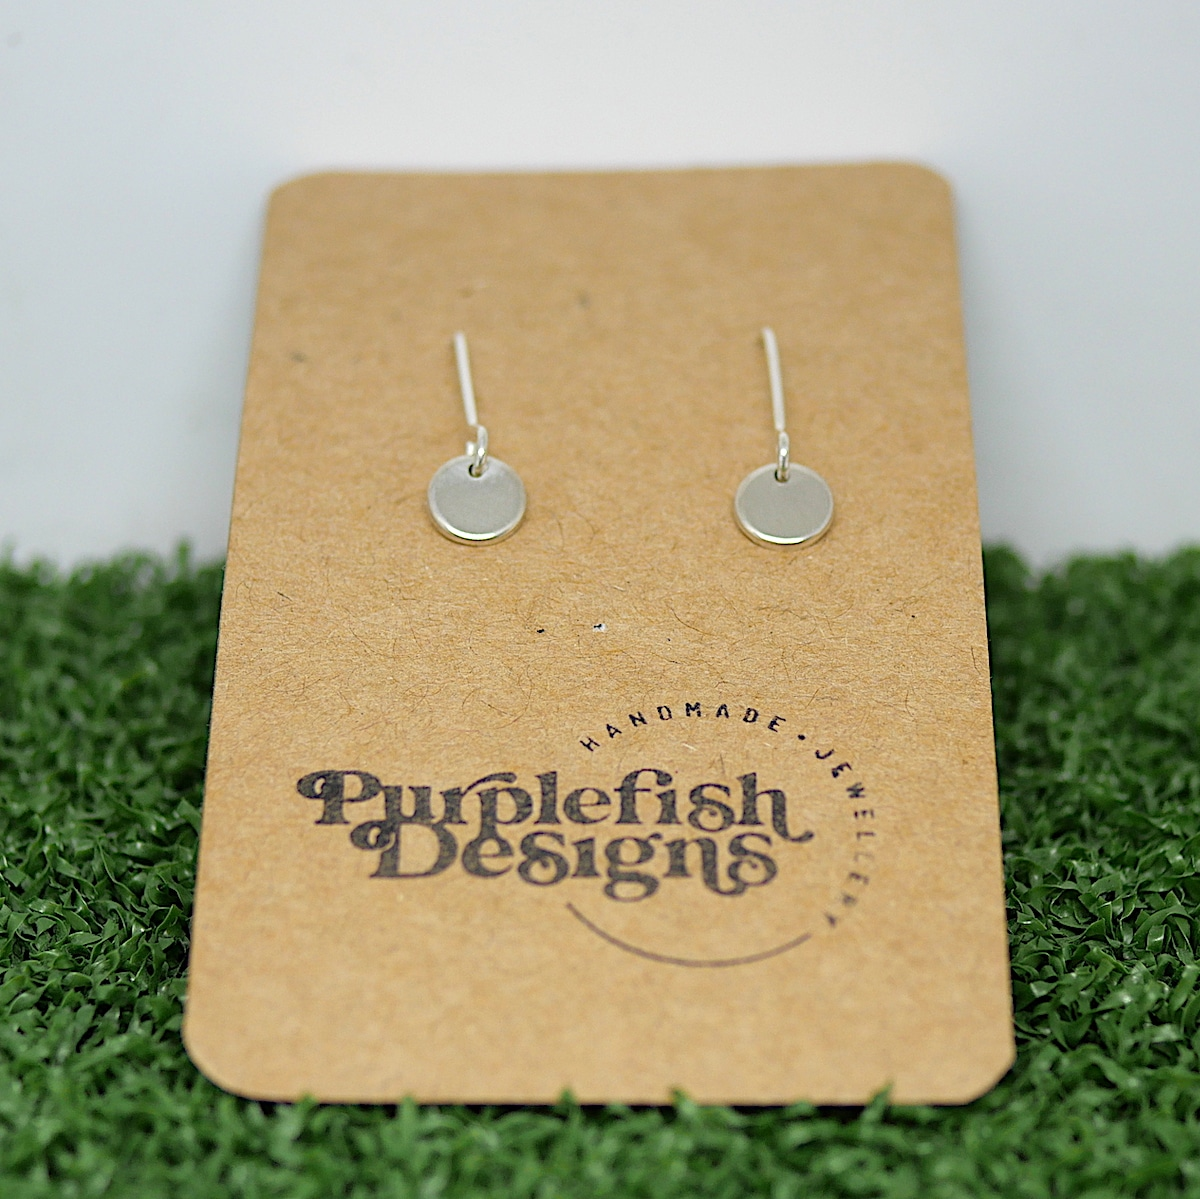 Tiny Dot Earrings – Handmade Sterling Silver Earrings By Purplefish Designs